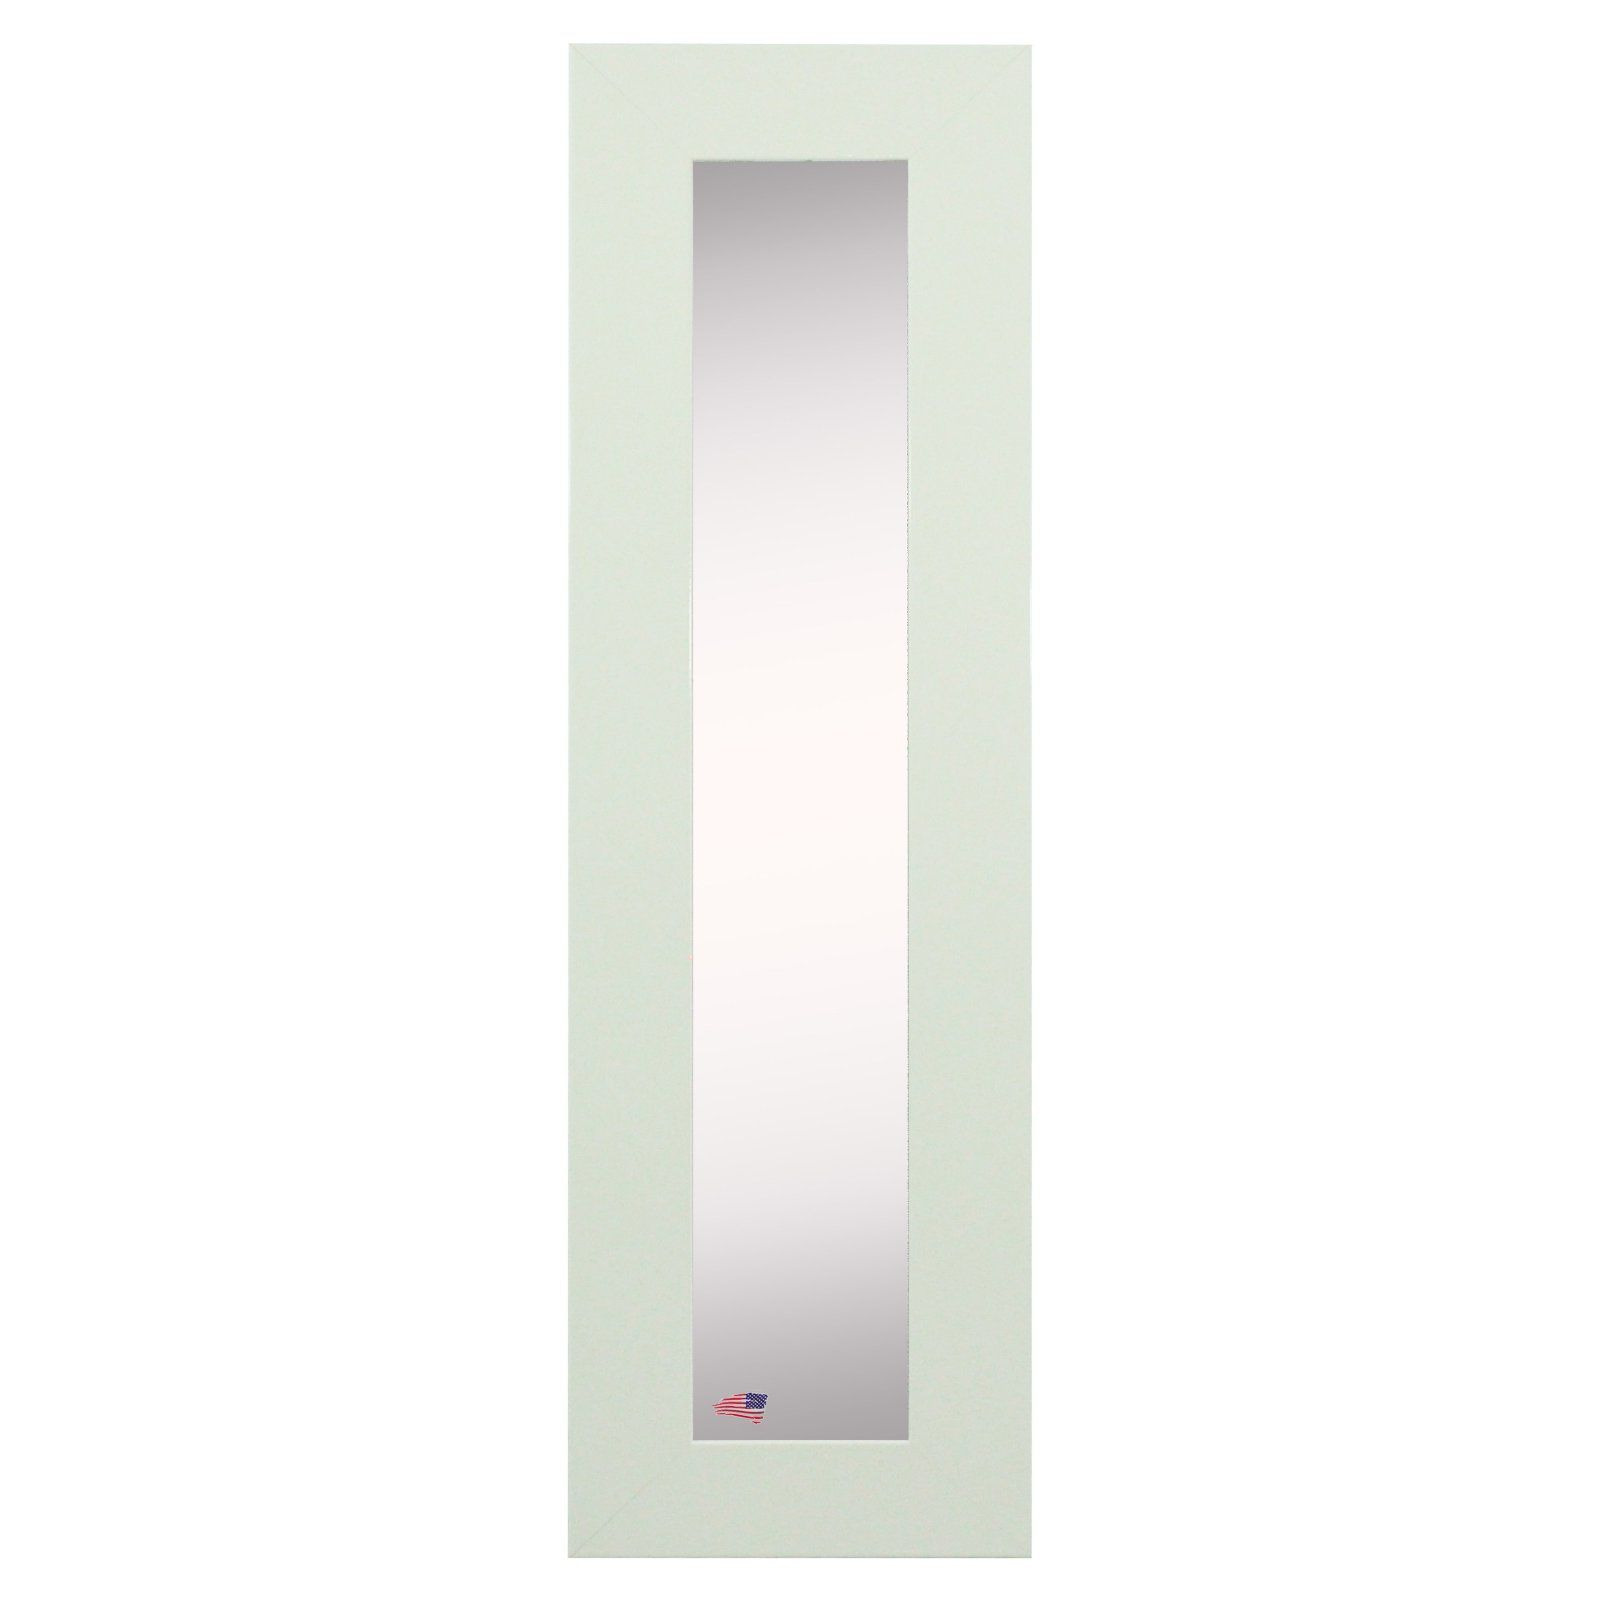 Wall Mirror Sets Of 4 With Widely Used Rayne Mirrors Delta White Panel Wall Mirror – Set Of (View 15 of 20)